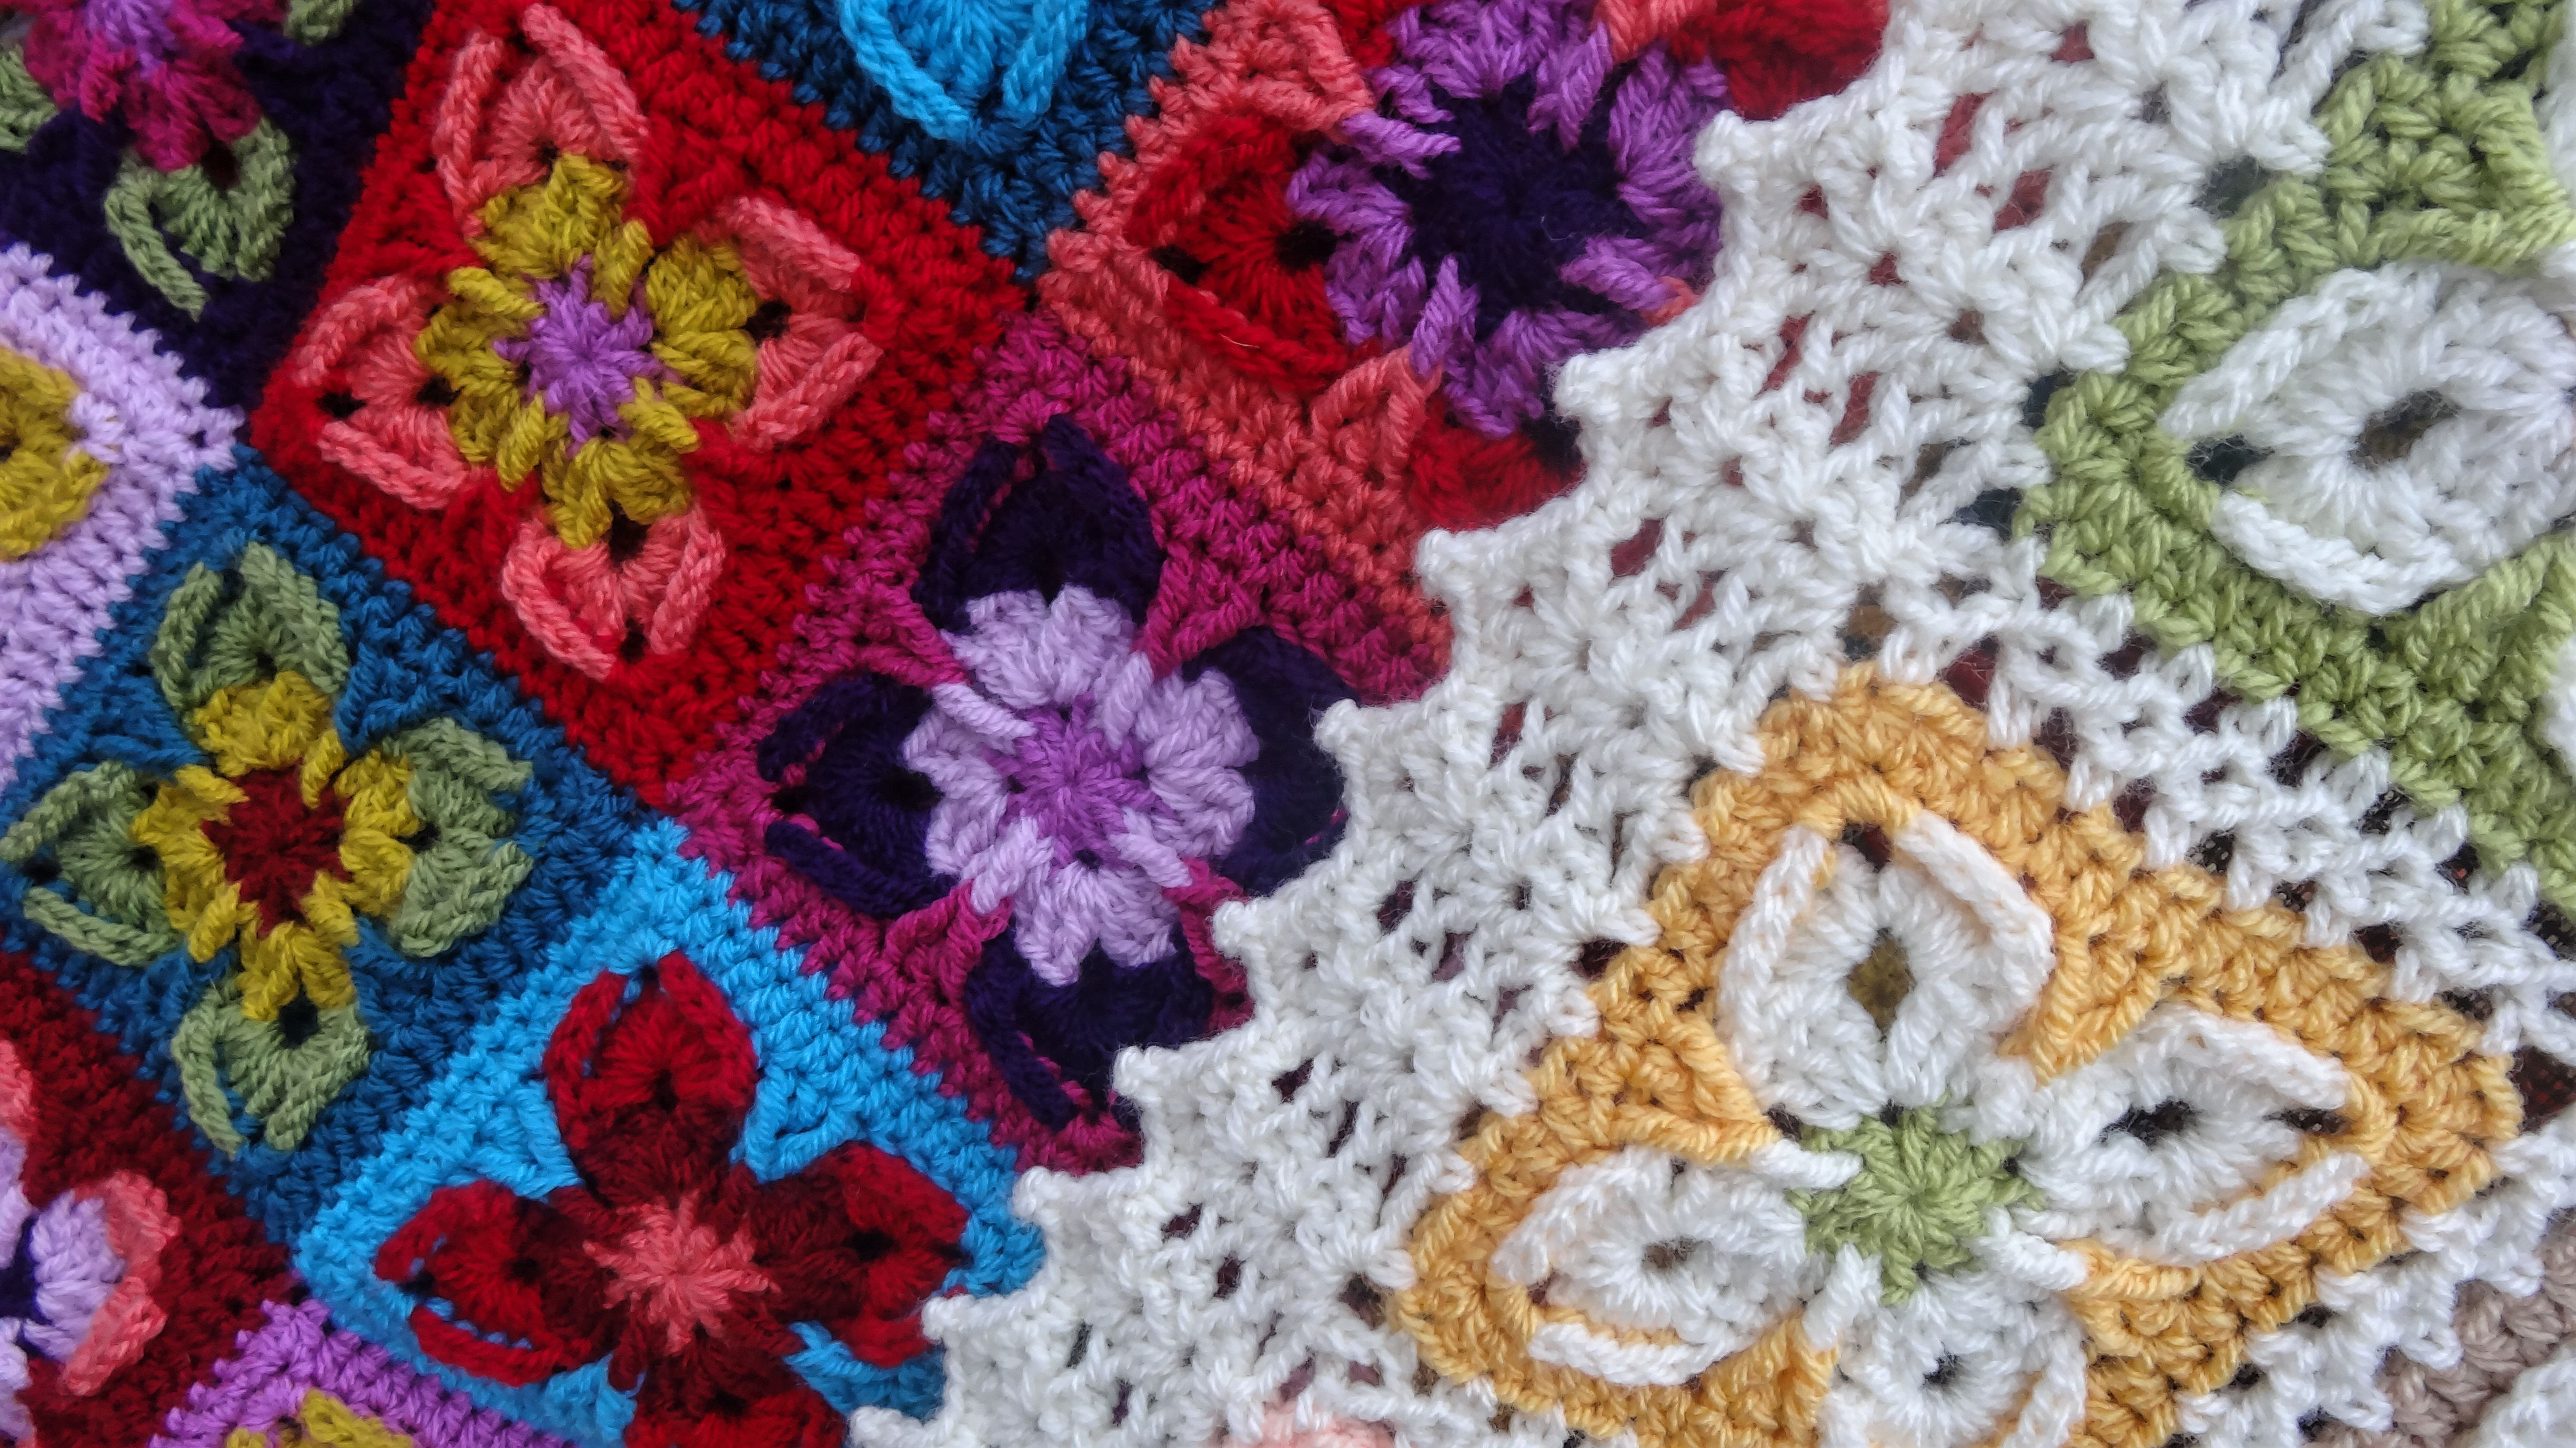 ANATOMY OF A BLANKET…OR TWO